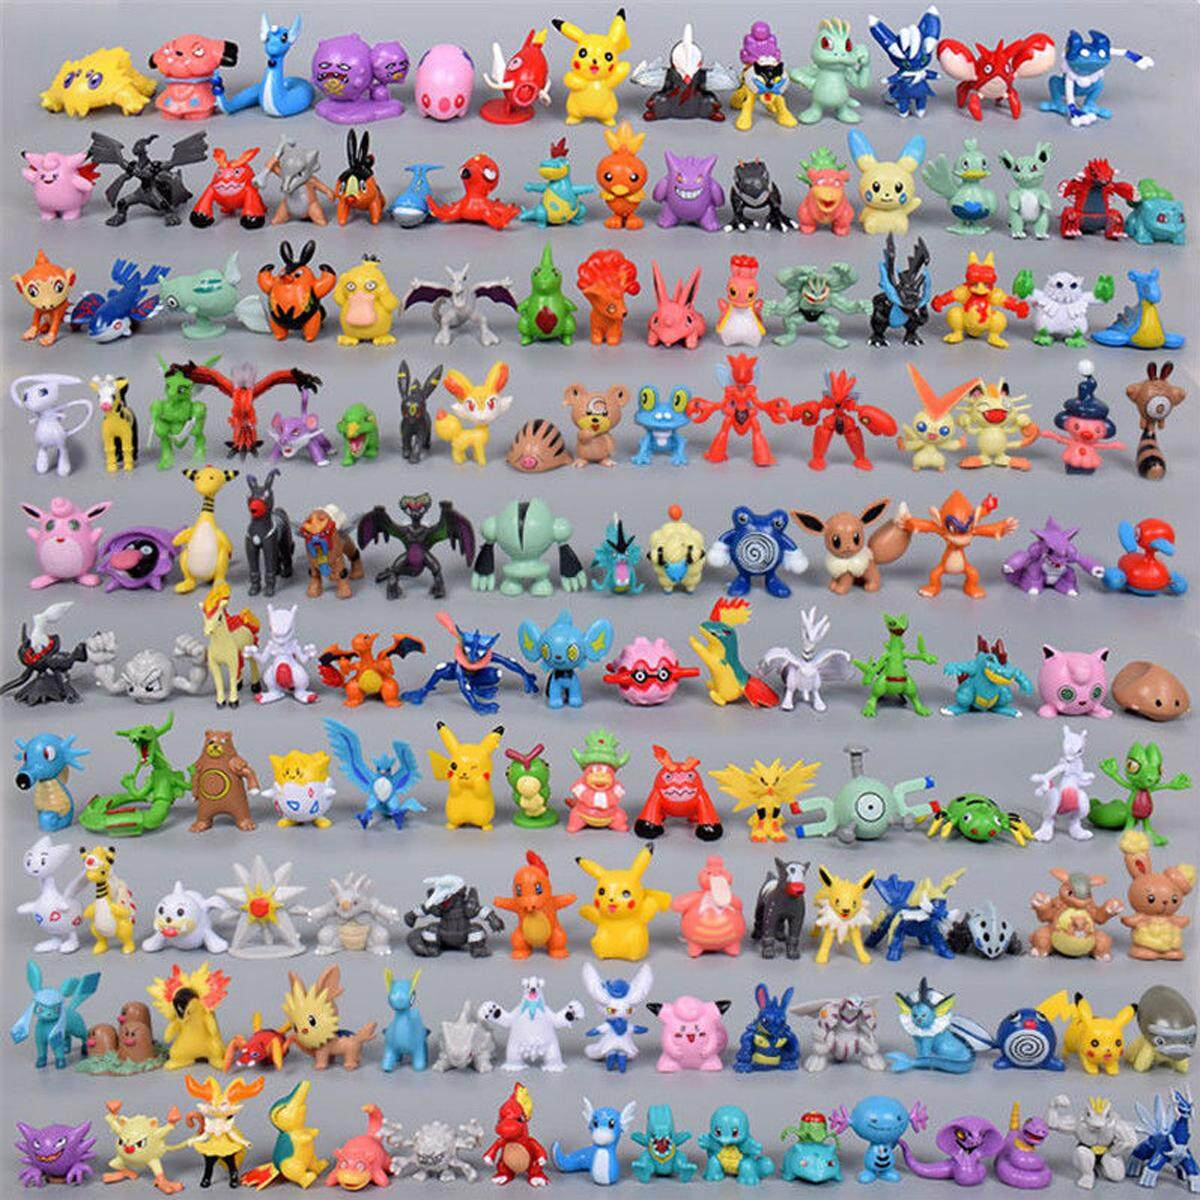 Hình ảnh 144pcs Pokemon Pocket Monster Figures Toy Random Character Model Kids Gift 2-3cm